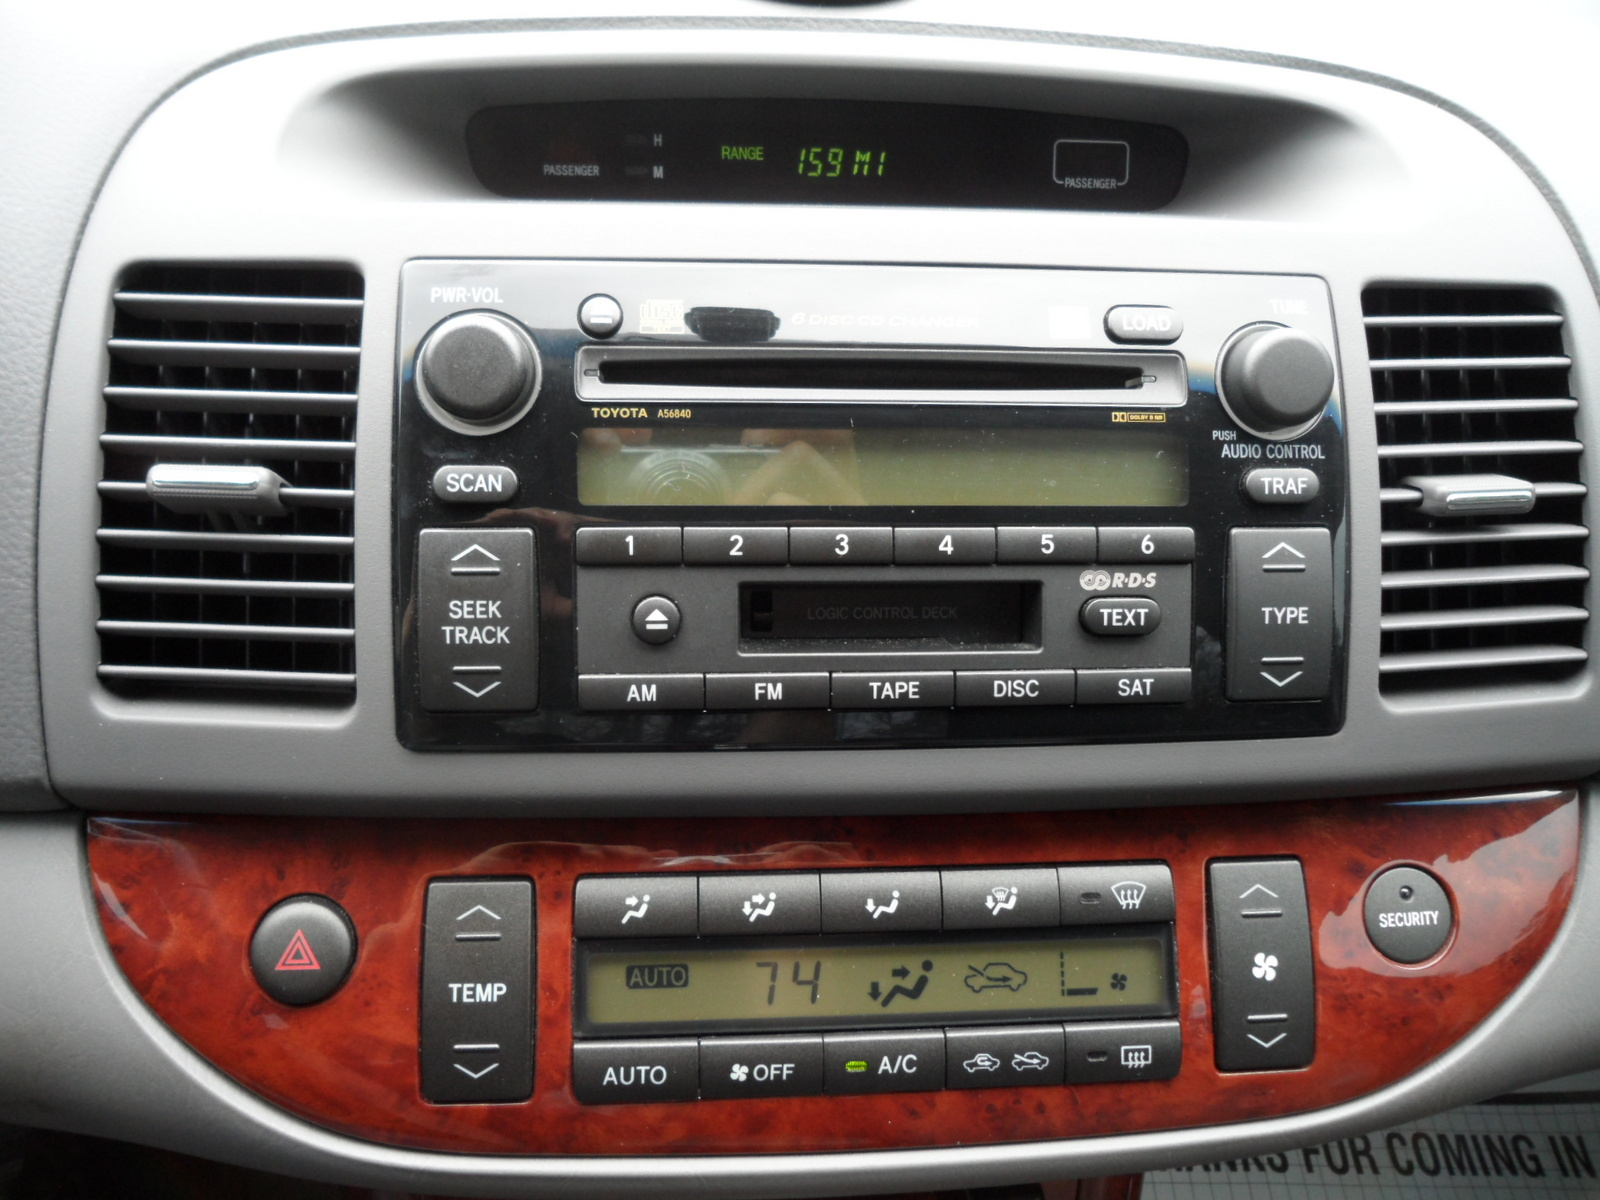 Toyota Camry 2009 Aux Input Not Working | 2018 Toyota ...